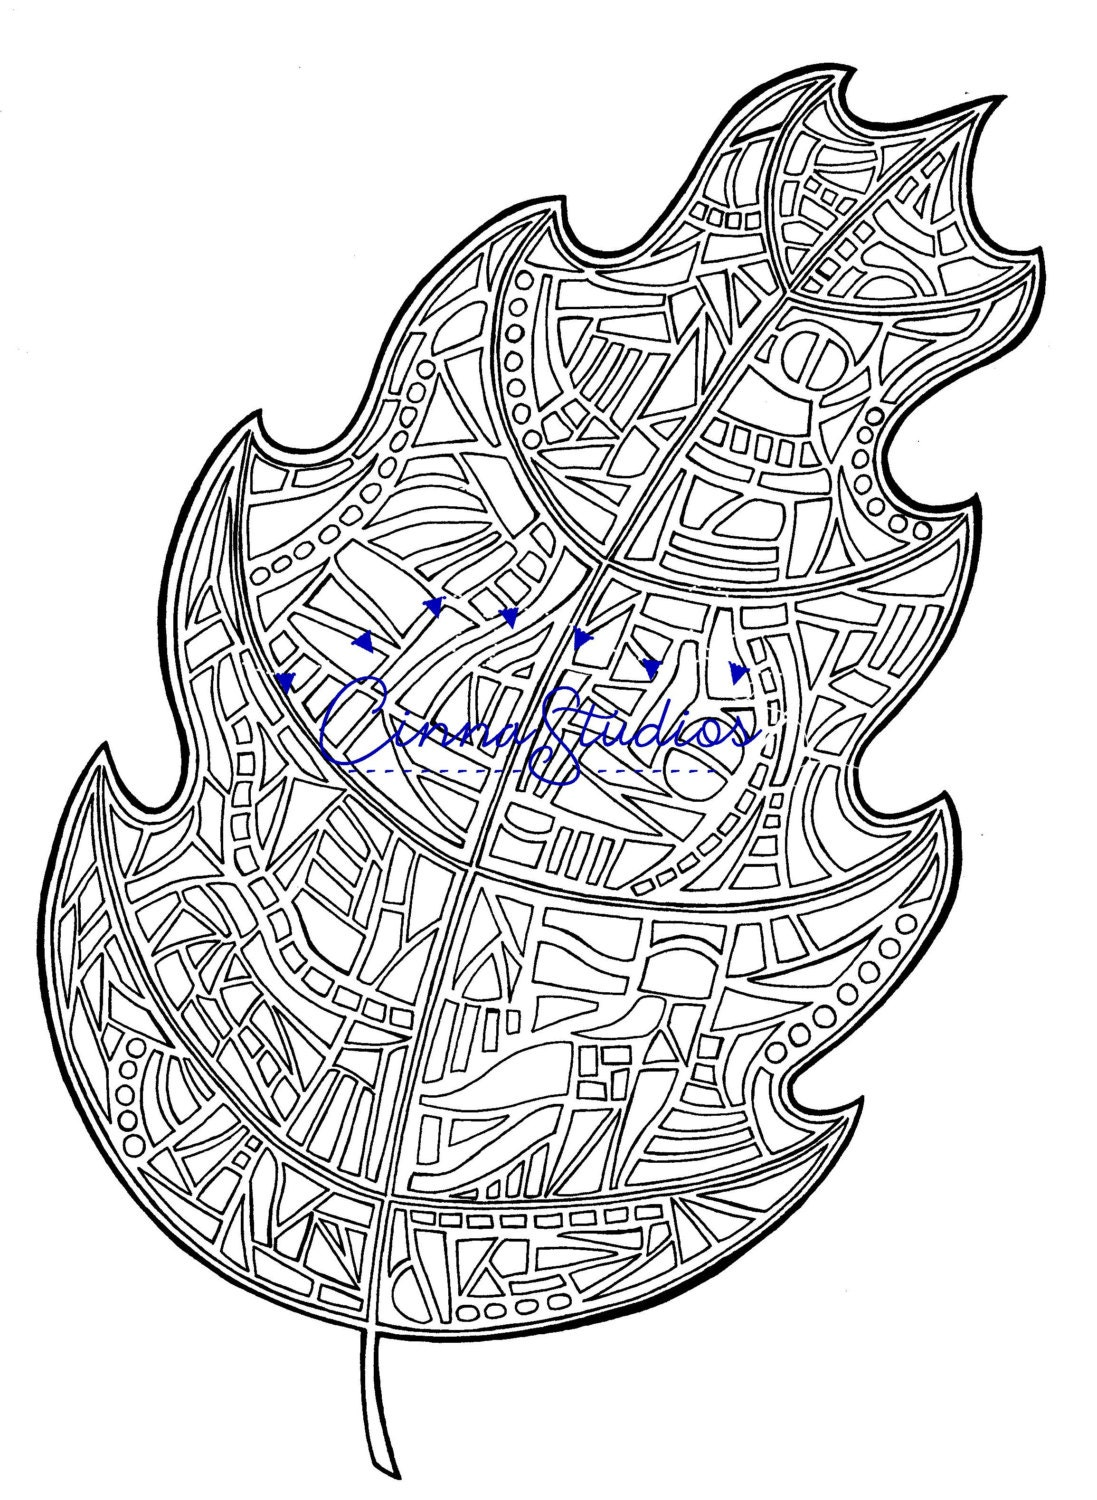 leaves ii coloring page coloring download printable page